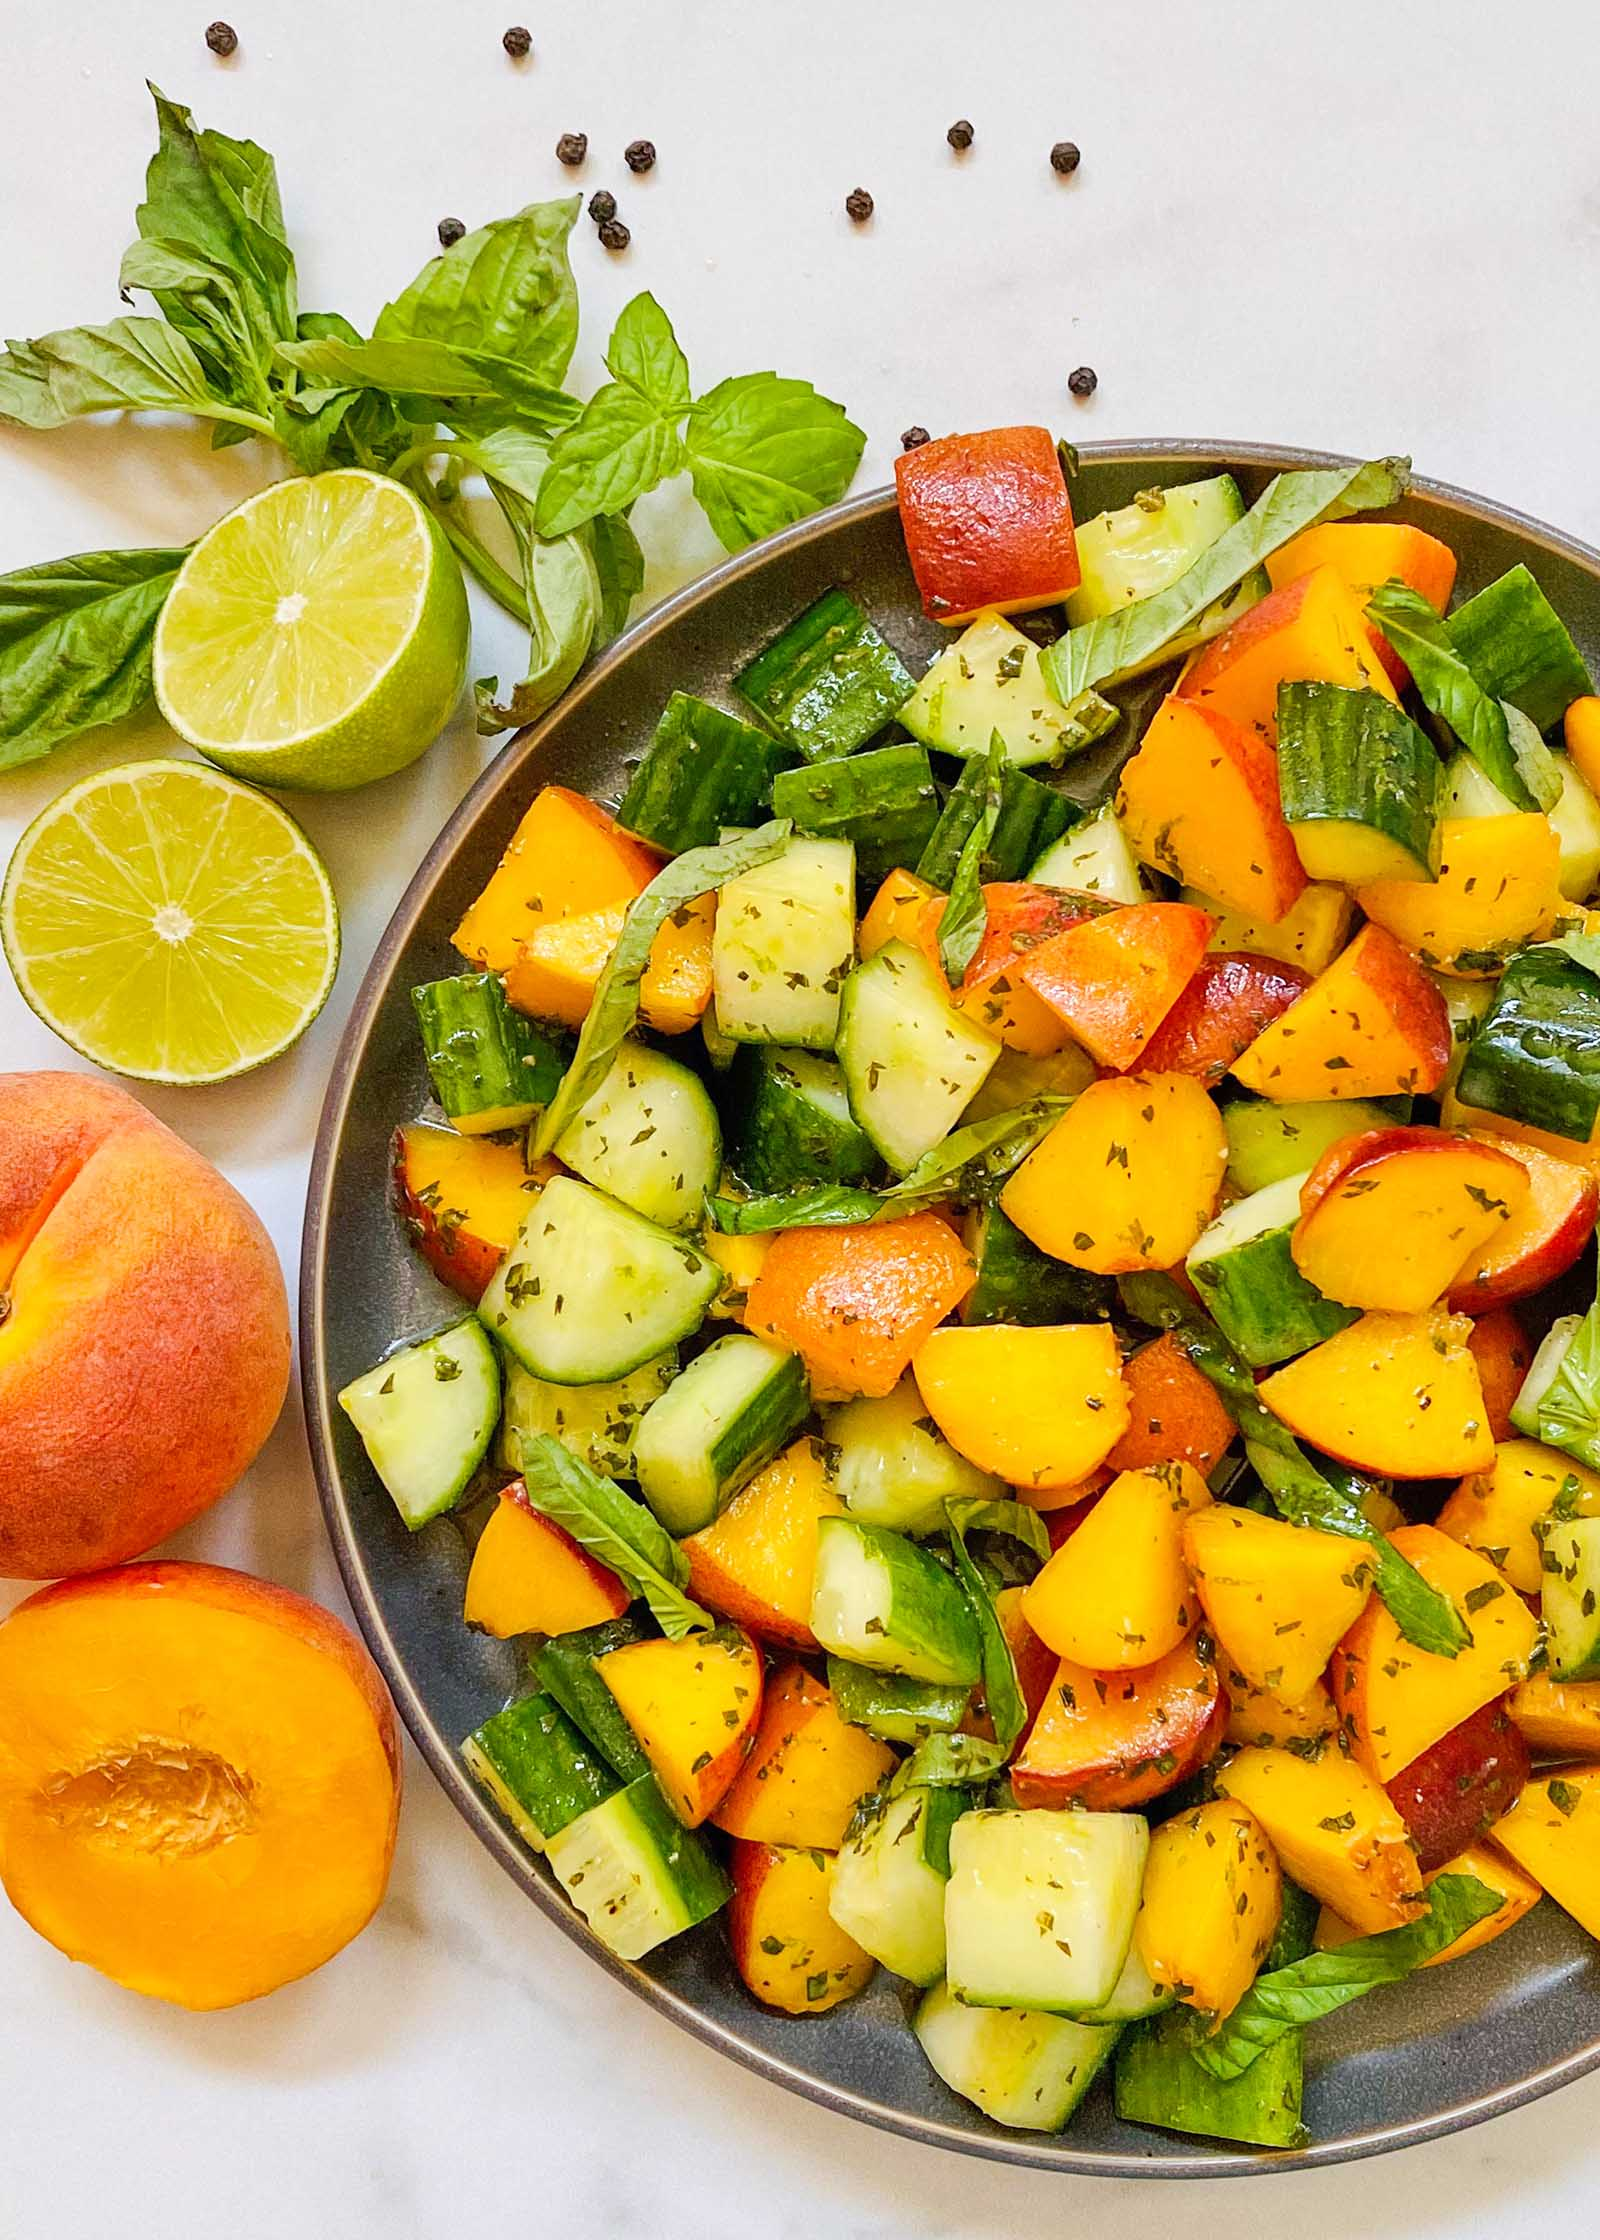 Refreshing summer salad made with peaches and cucumbers in a bowl with peaches, limes and basil to the left.